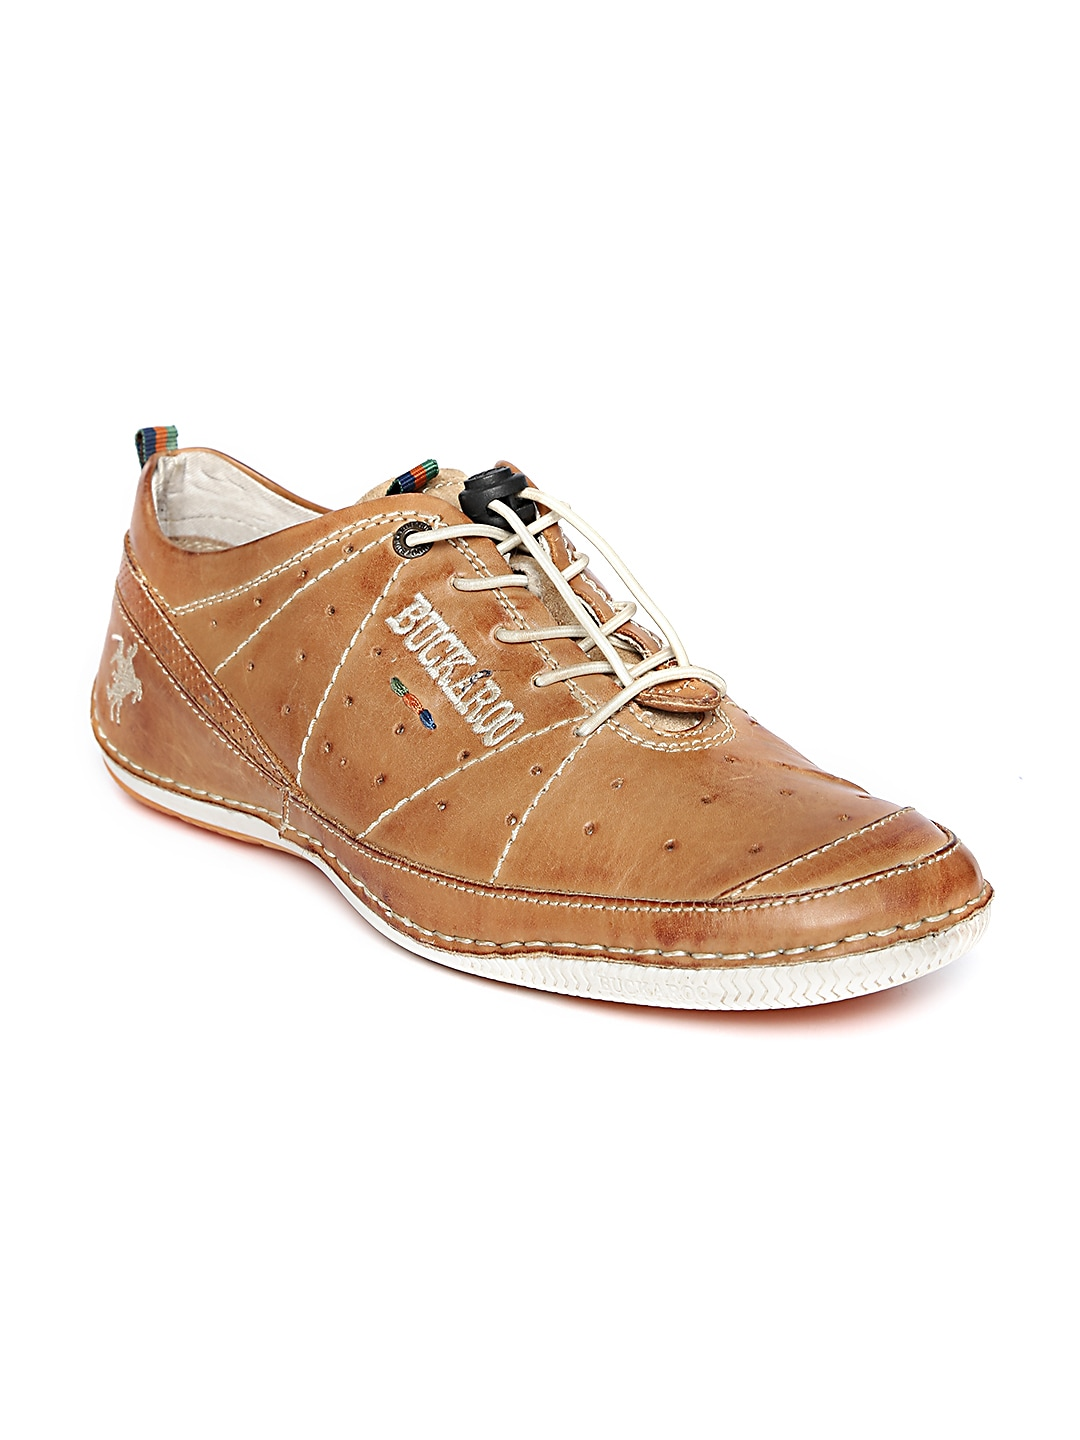 Buckaroo Men Tan Brown Leather Casual Shoes image